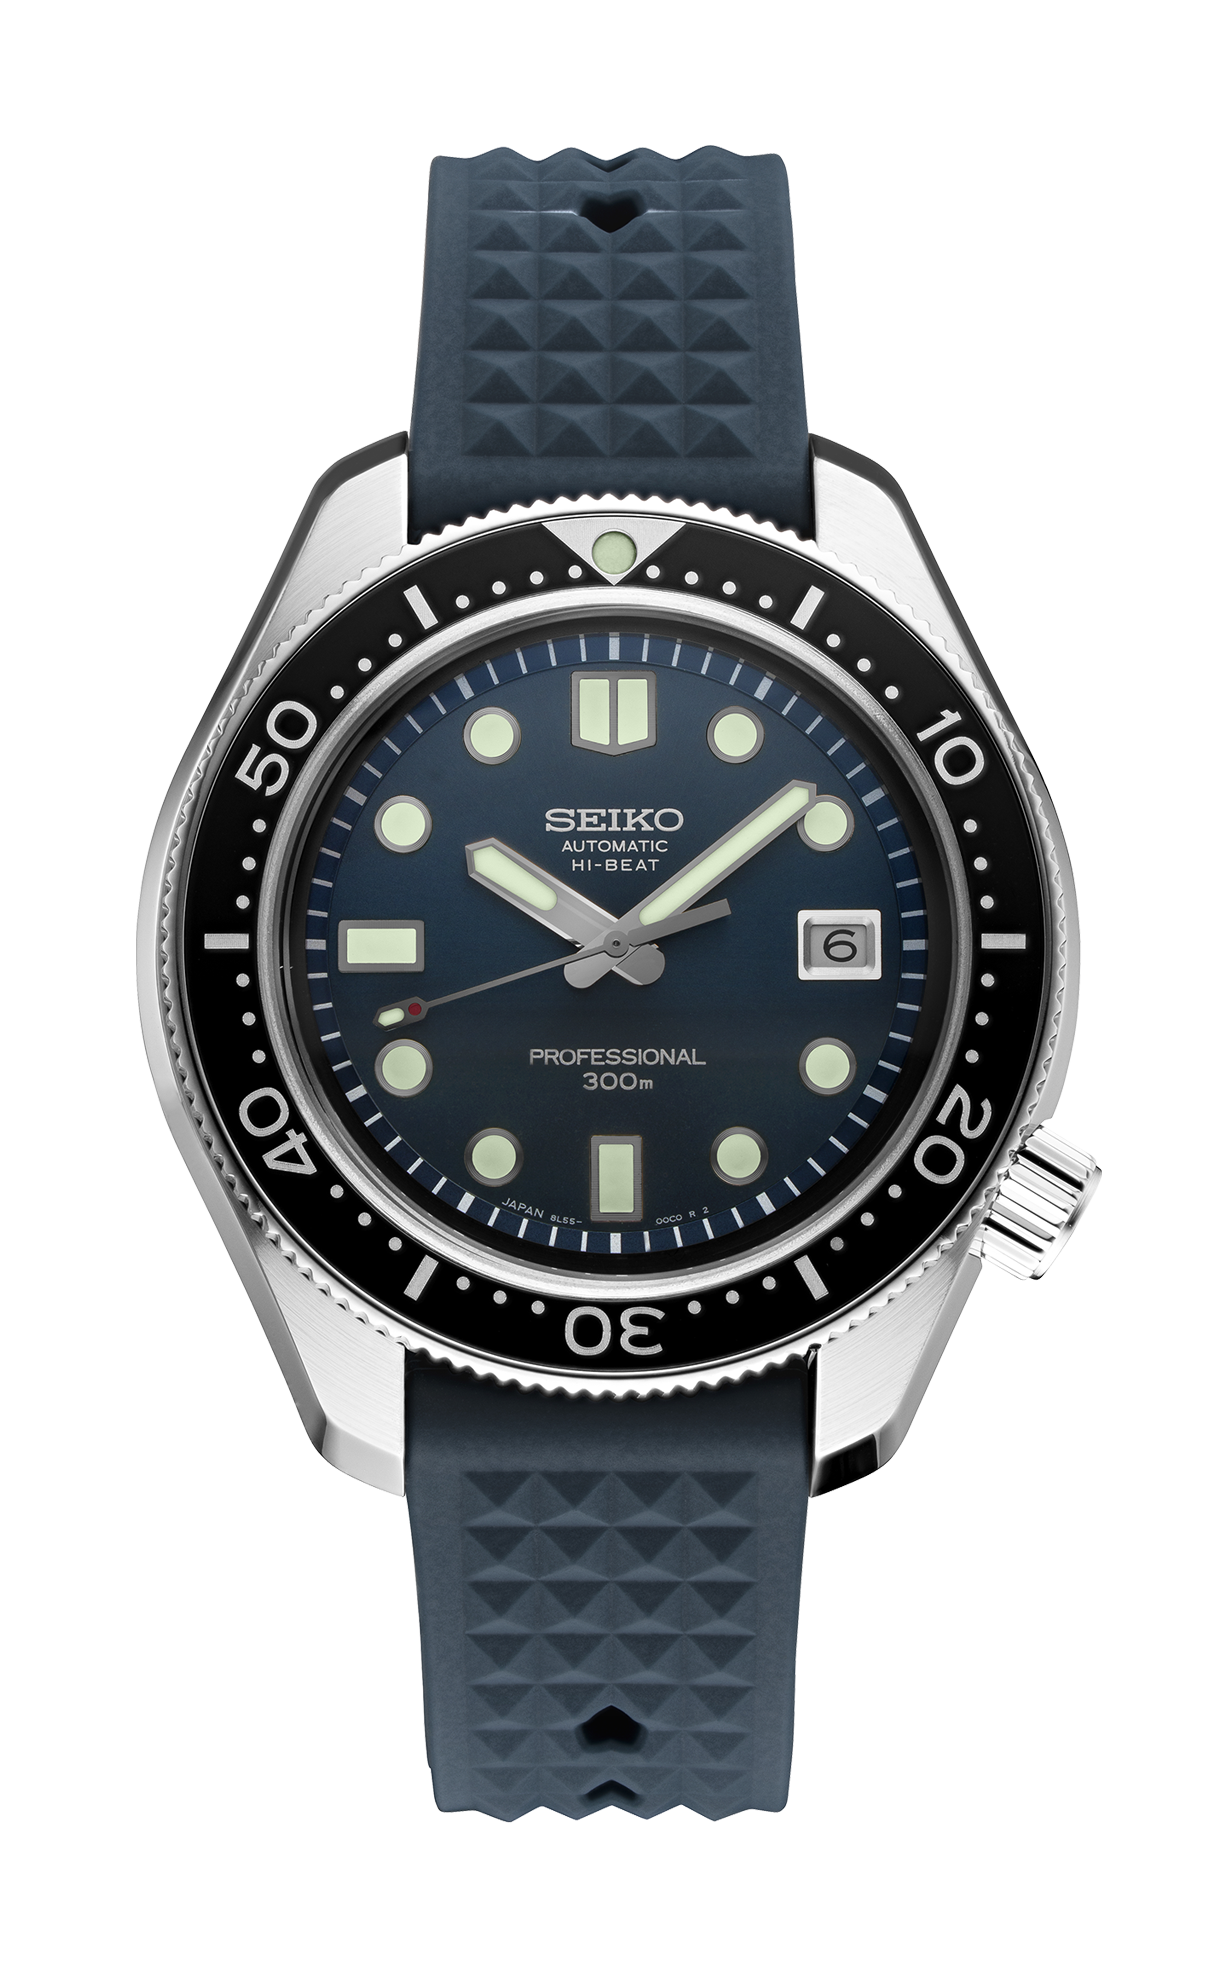 Seiko Prospex Limited Edition 55th Anniversary Divers Watch